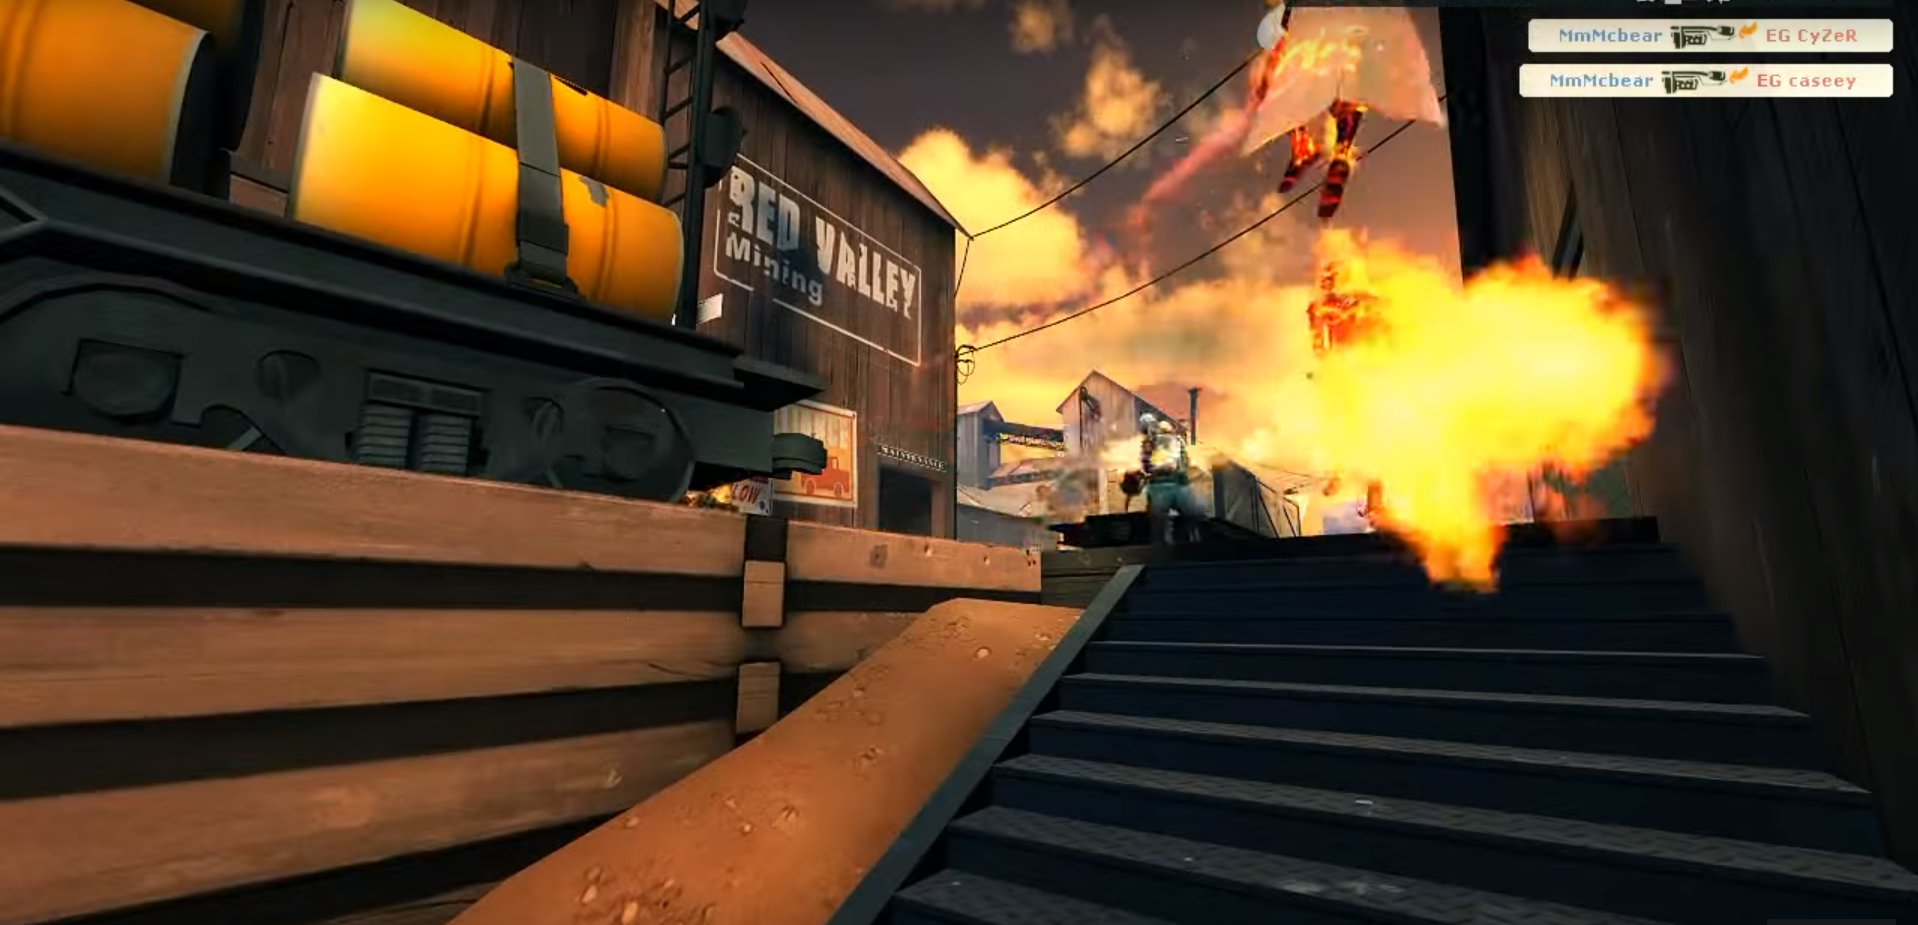 MmM roamer cbear on pyro flanking through shithouse against EG on mid (image taken from one of TF2's most phenomenal frag videos, Muscle Milk and Moolians)